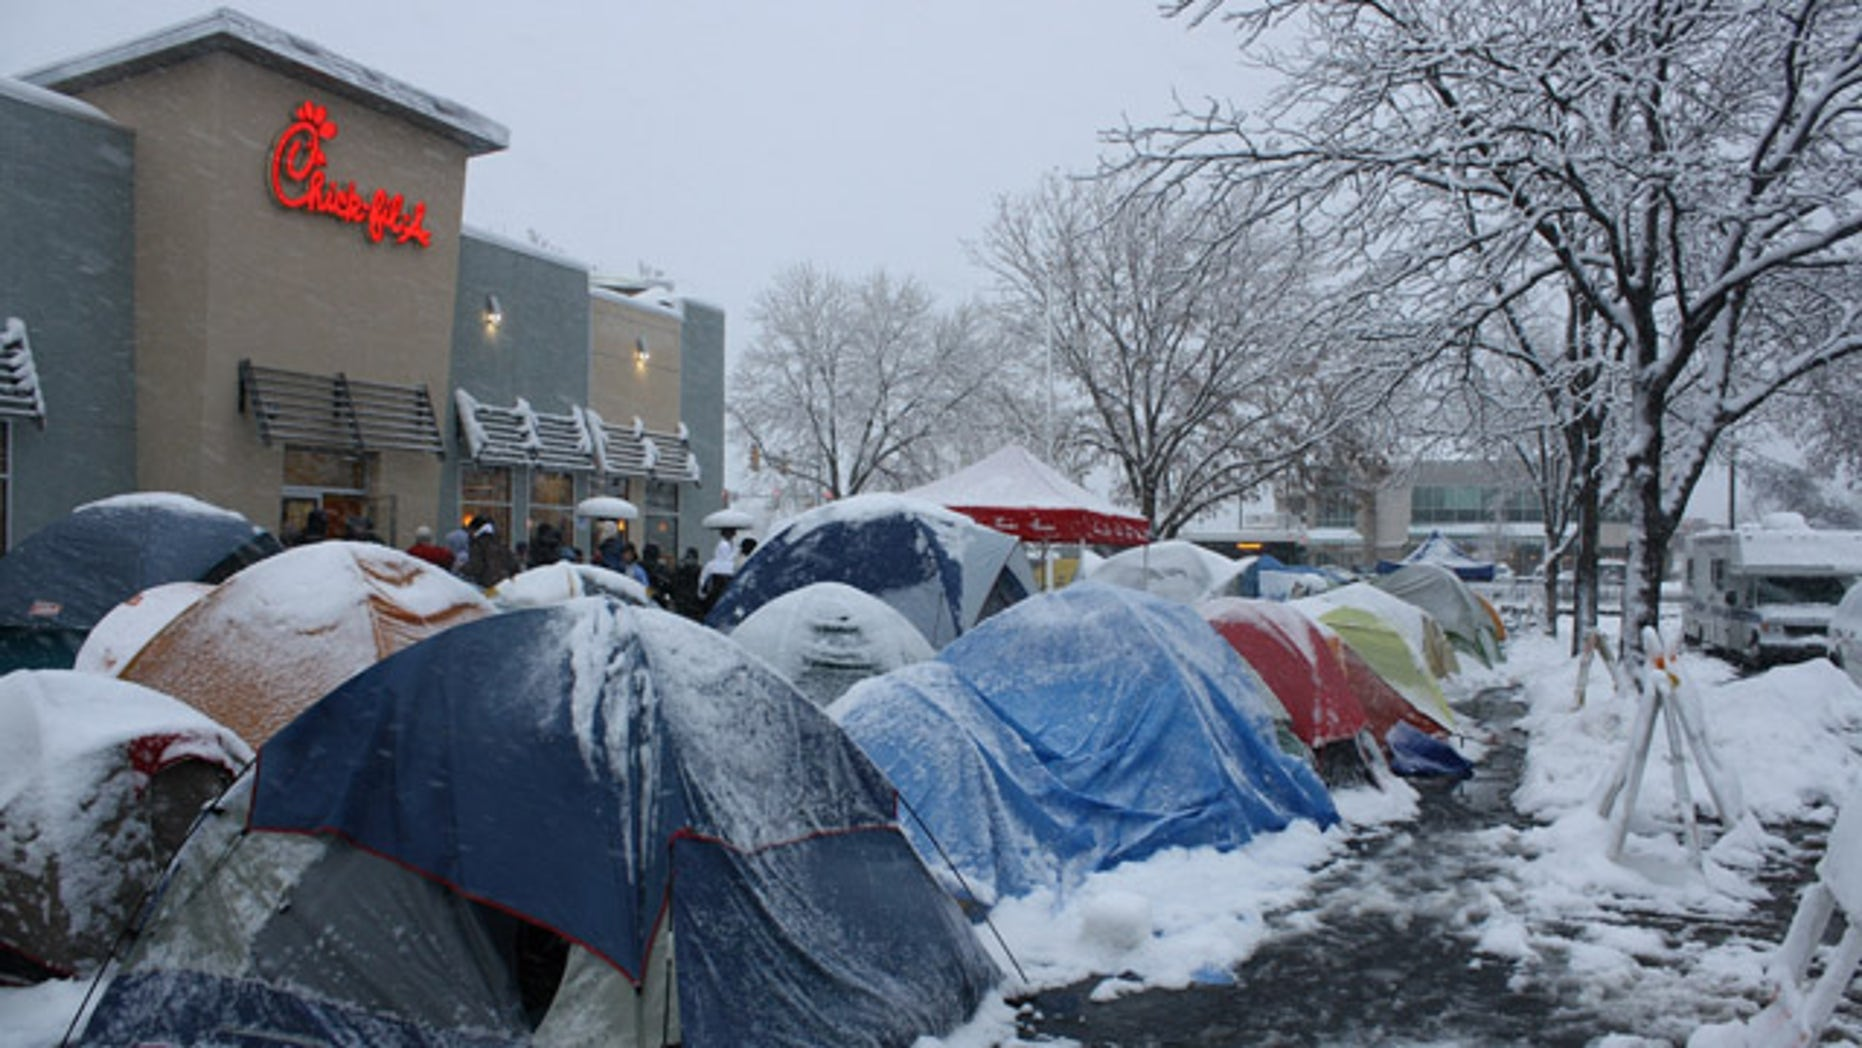 In this 2009 photo provided by Chick-fil-A, fans camp out in some extreme conditions, in Fort Collins, Colo., for the First 100 customers bonus coupons. Call it fanaticism or simply dedication, but these are the type of ultra-enthusiastic fans that every restaurant craves.   (AP Photo/Chick-fil-A)